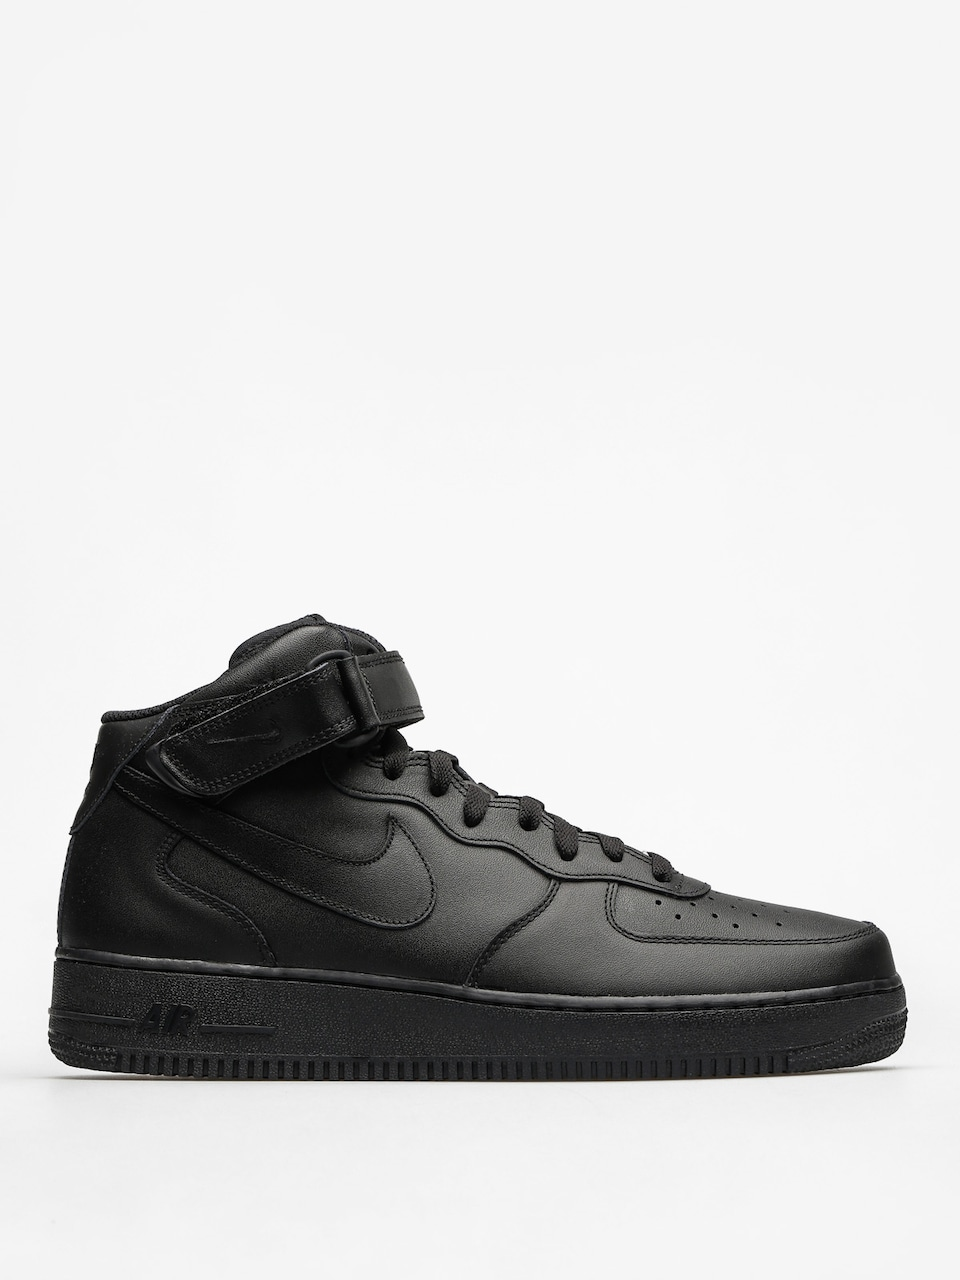 Buty Nike Air Force Winter Limited Edition Rozmiar 43 Zimowe